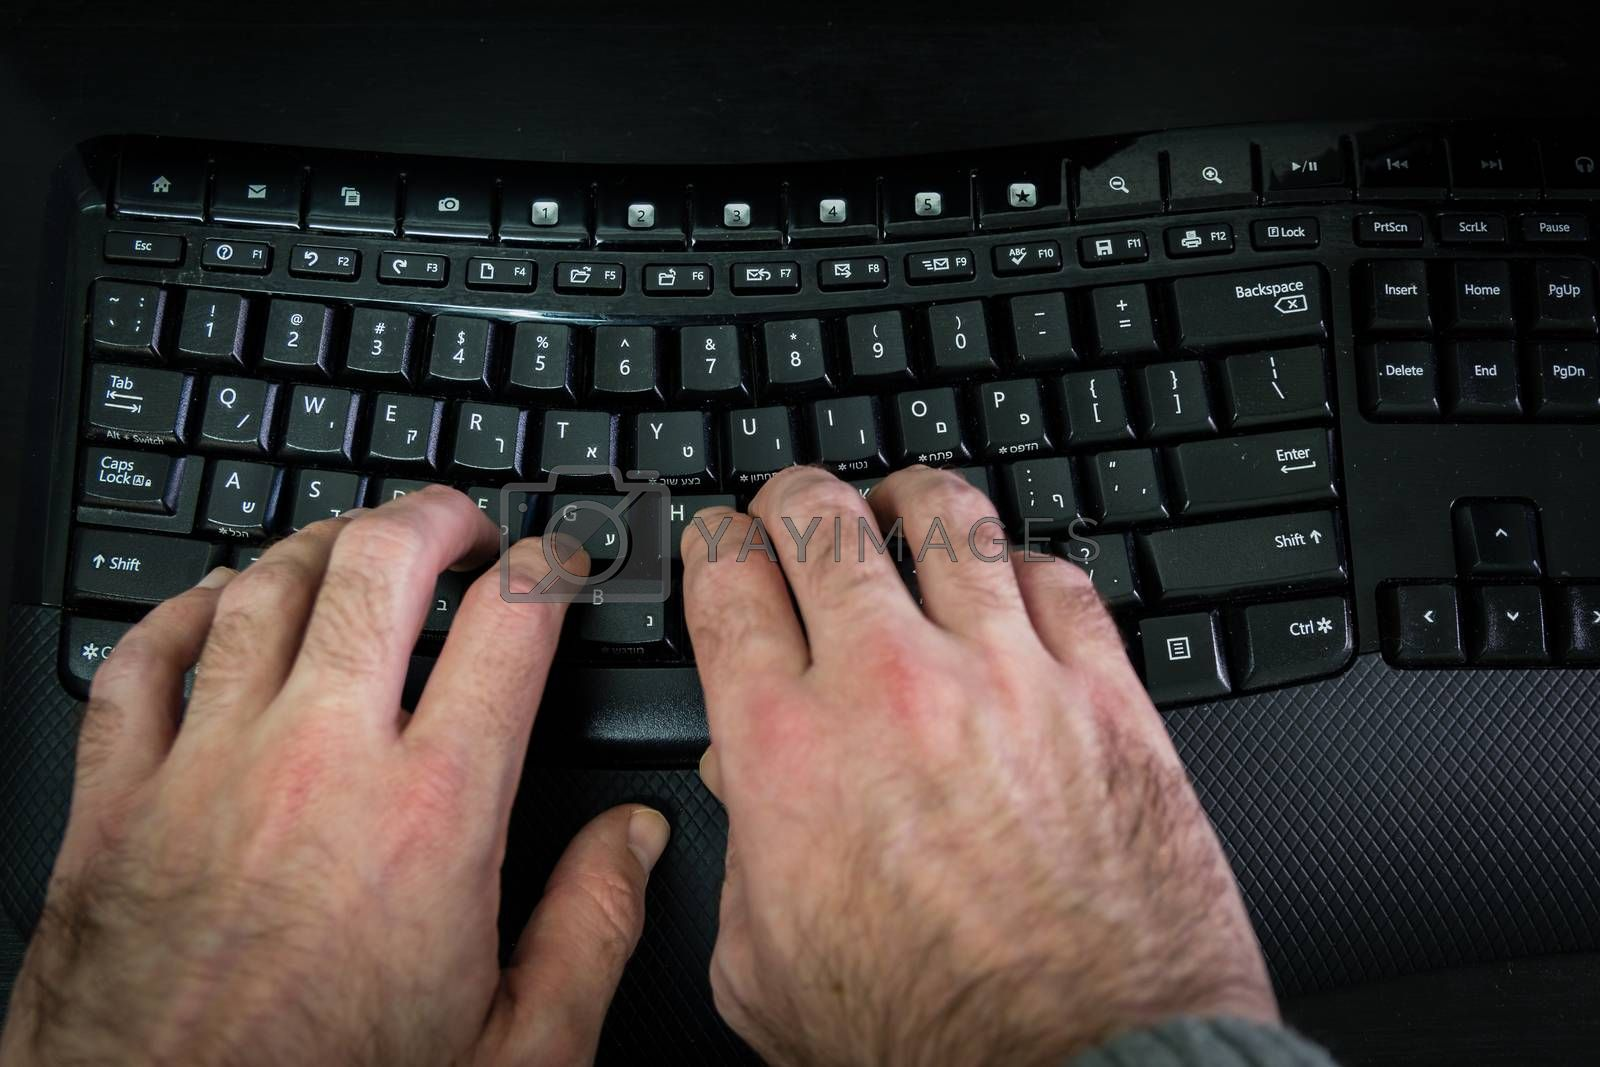 Man typing on a keyboard with letters in Hebrew and English - Wireless keyboard - Top View - Dark atmosphere